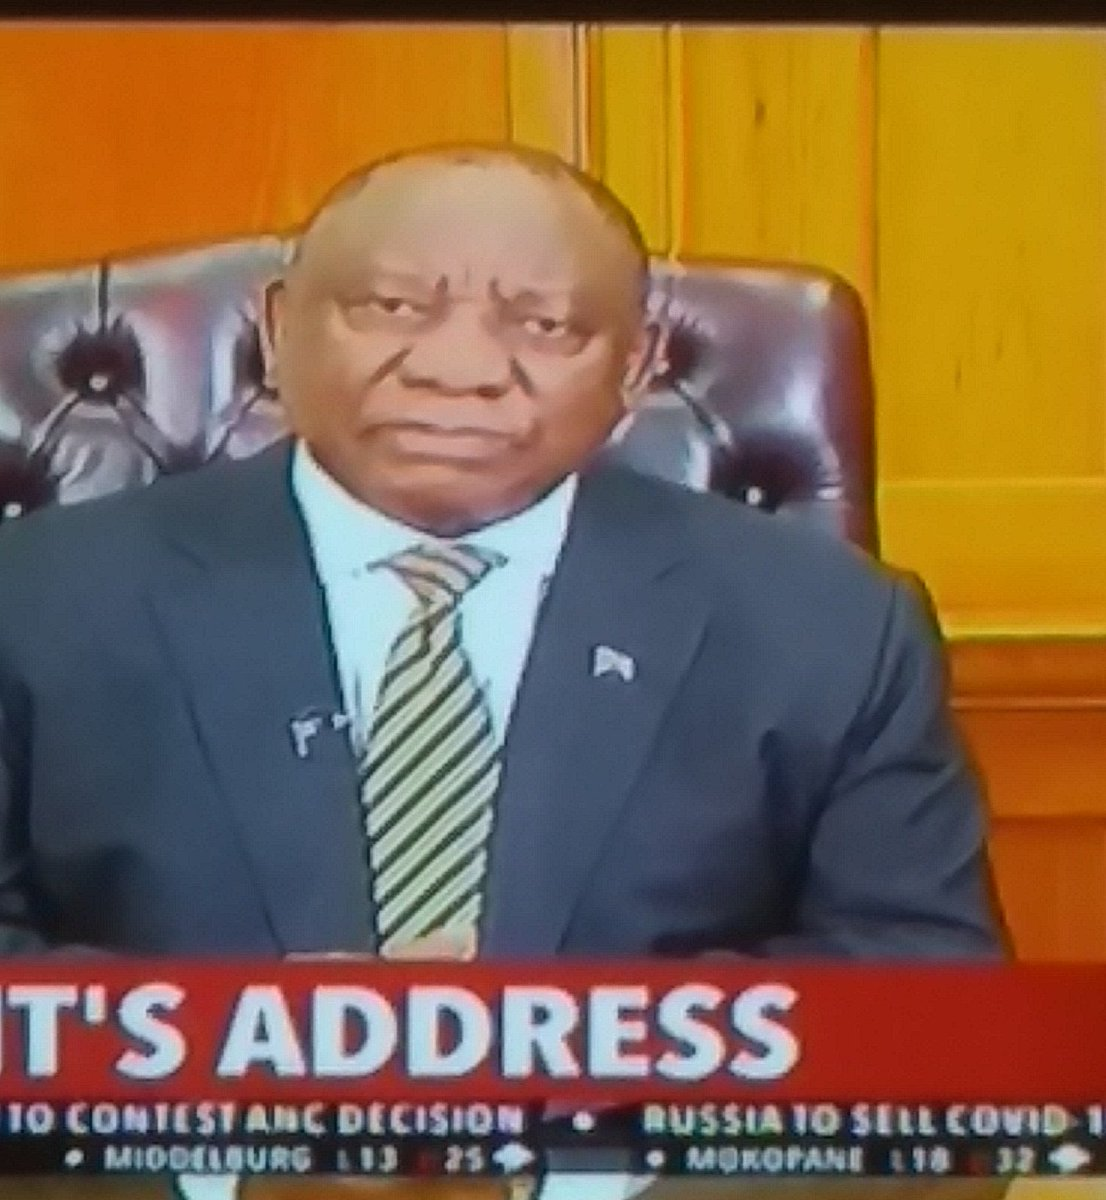 When a #FellowSouthAfricans #CyrilRamaphosa is about to lie to fellow South Africans 🤔🙄😏 https://t.co/77F9cFlos7